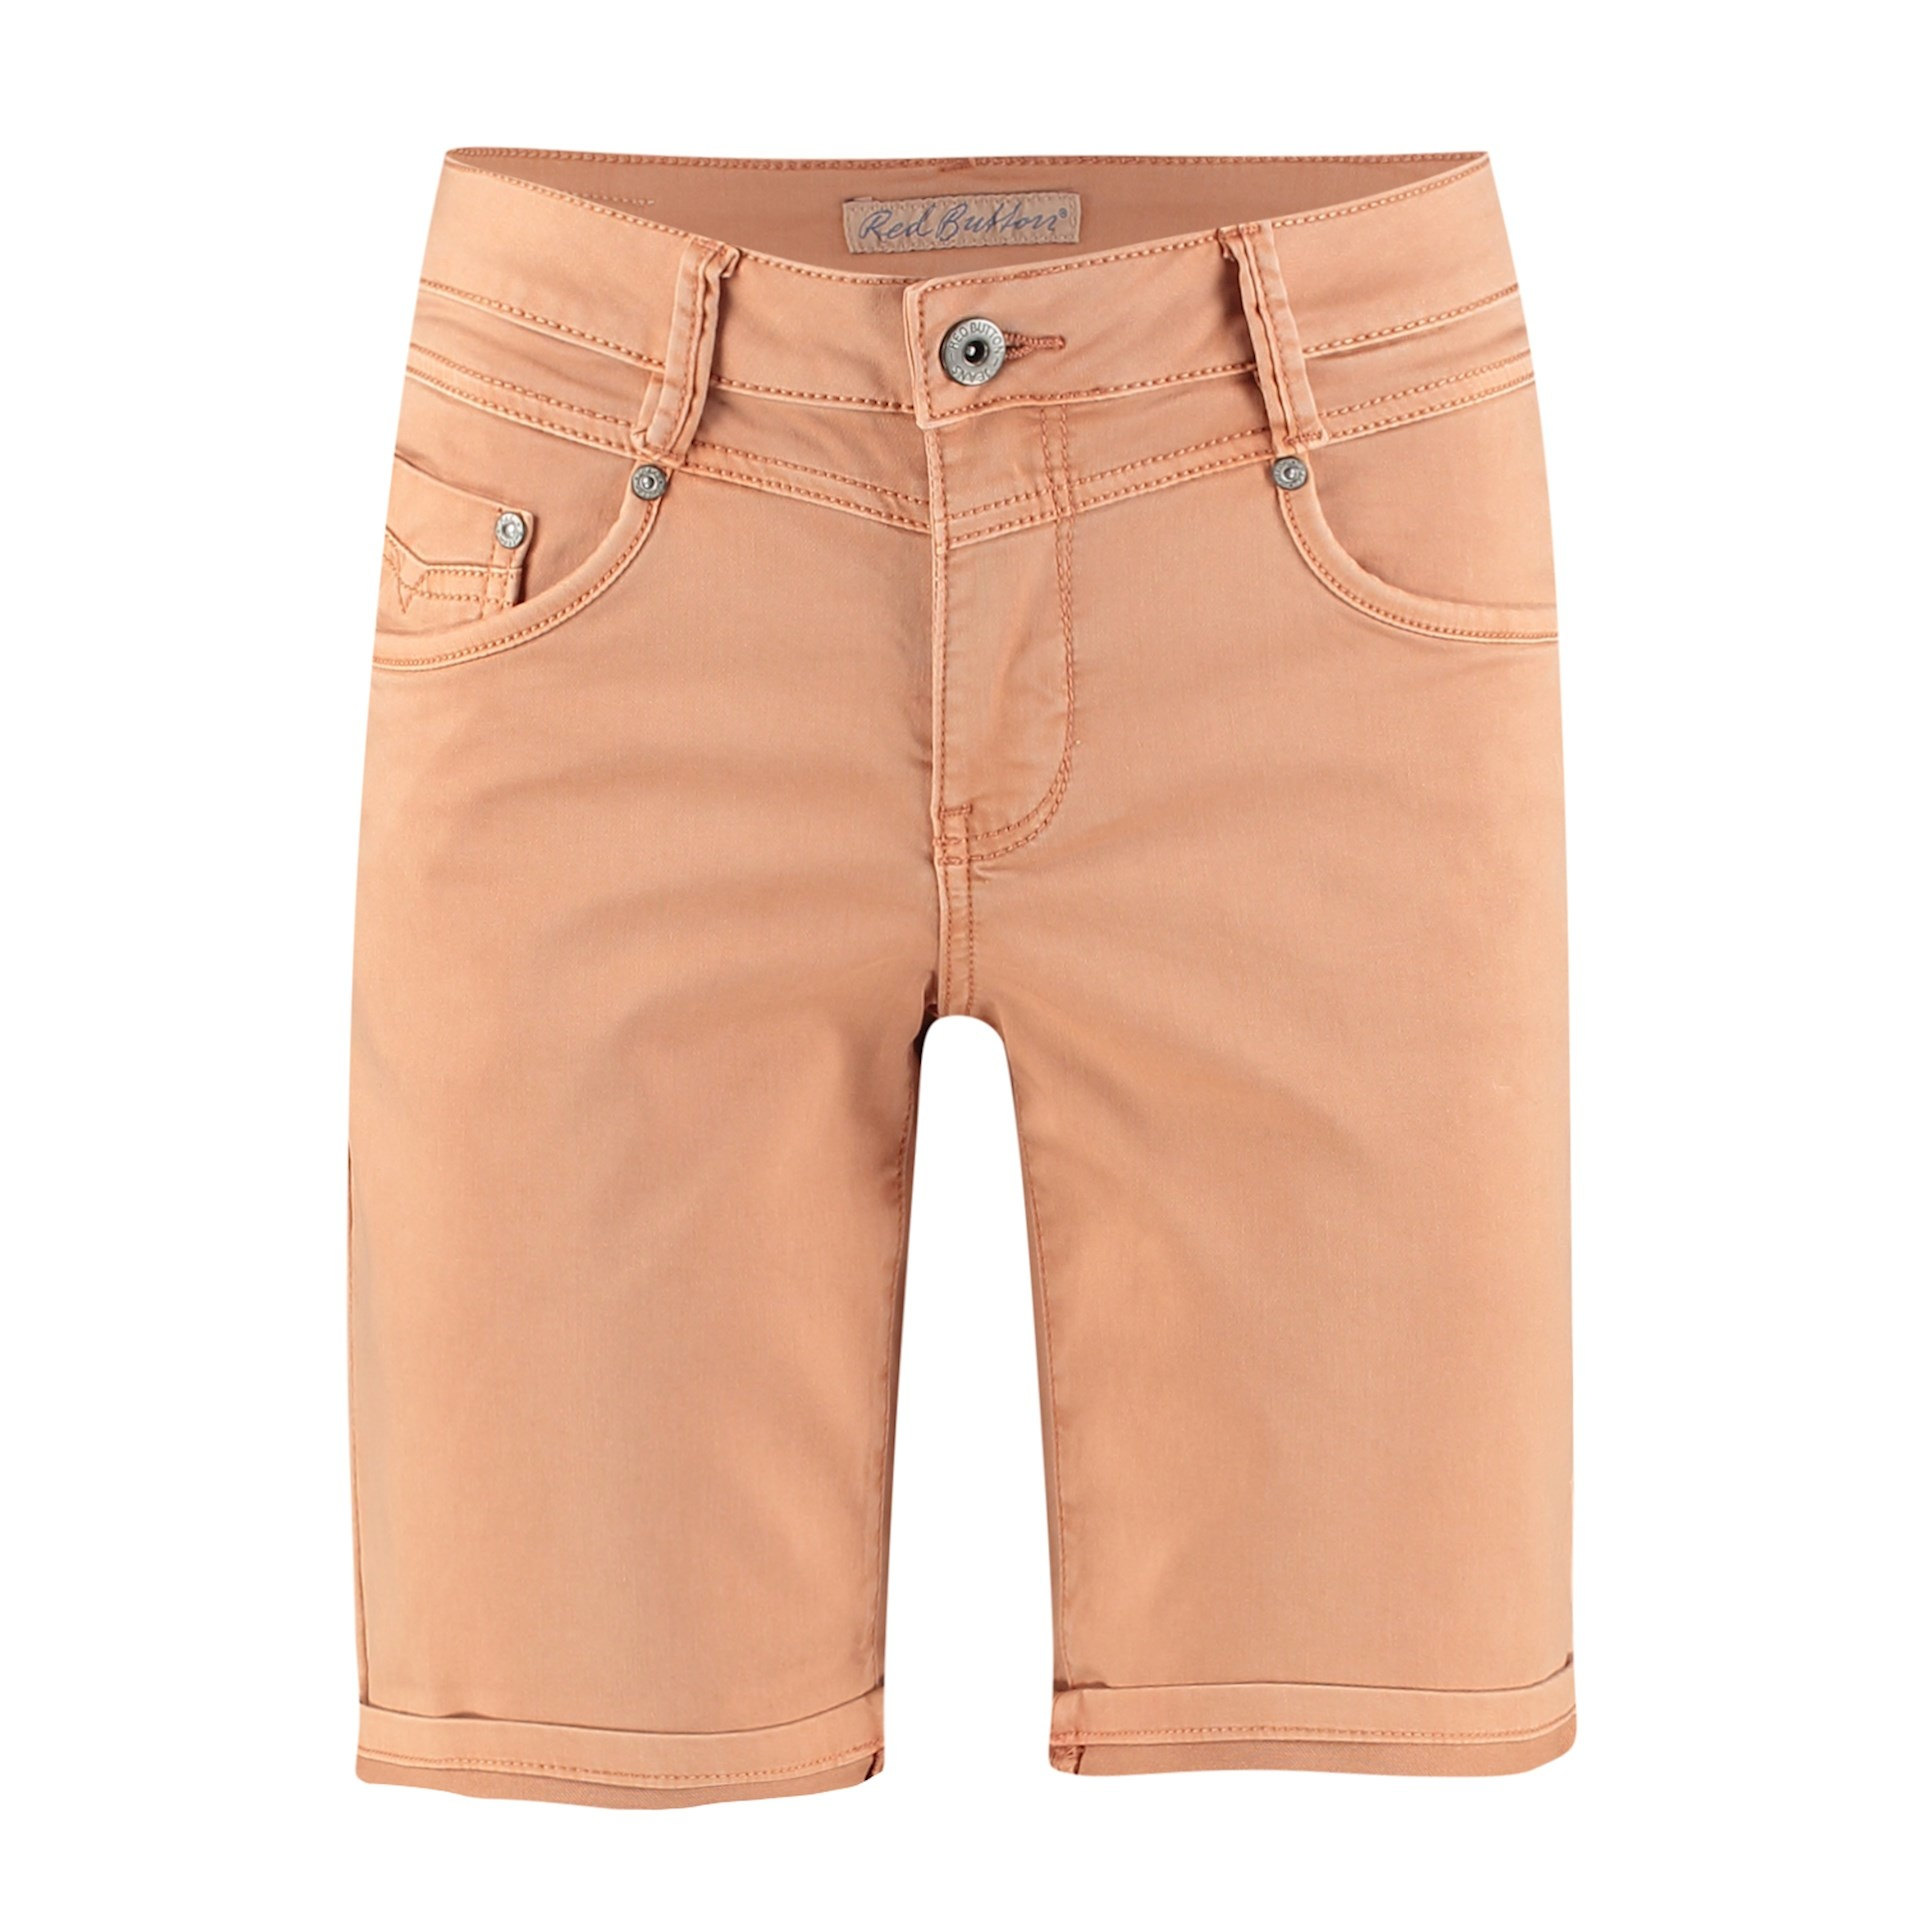 Red Button Red Button short Relax jog color peach